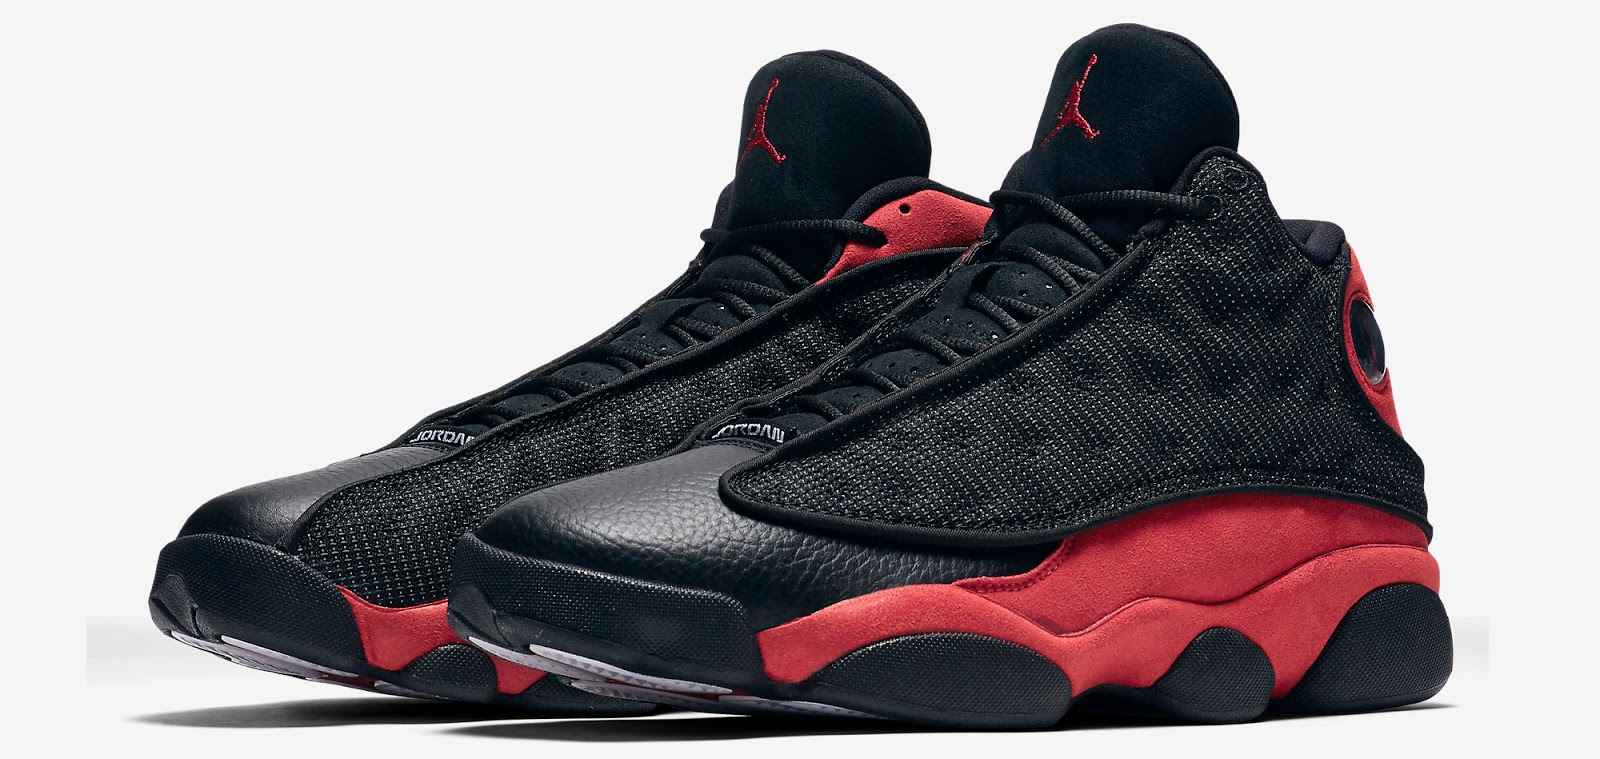 timeless design a91e4 adf26 Last seen in 2013, the original black, true red and white colorway of the  Air Jordan 13 Retro is back. Remastered, they feature a black-based leather  upper ...